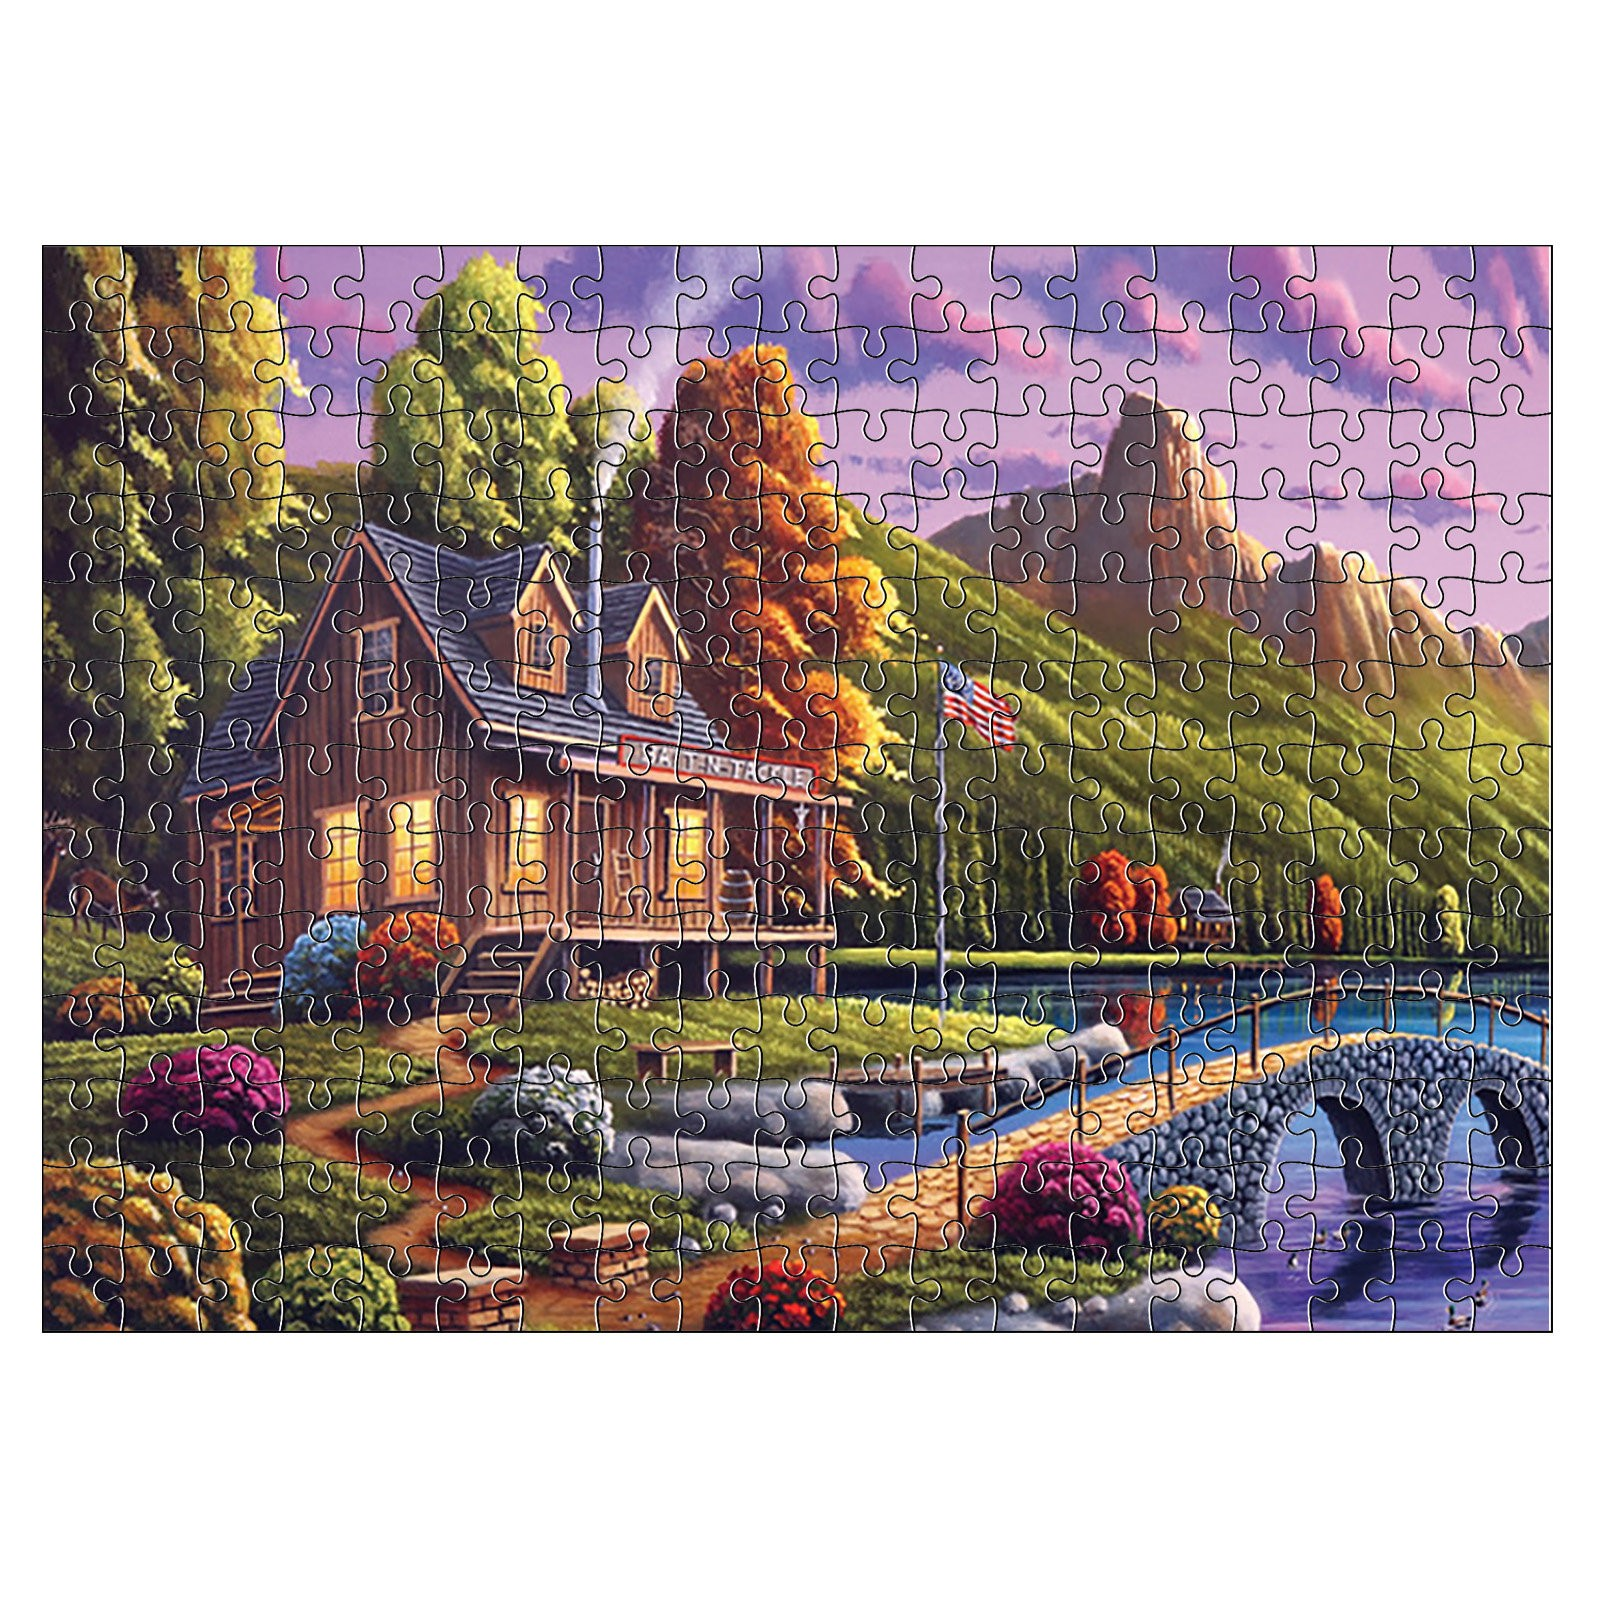 1000 Pieces Jigsaw Puzzle Children's Adult Wooden Puzzle Intelligence Educational Game Toys kids Jigsaw Puzzle toys Stickers 9